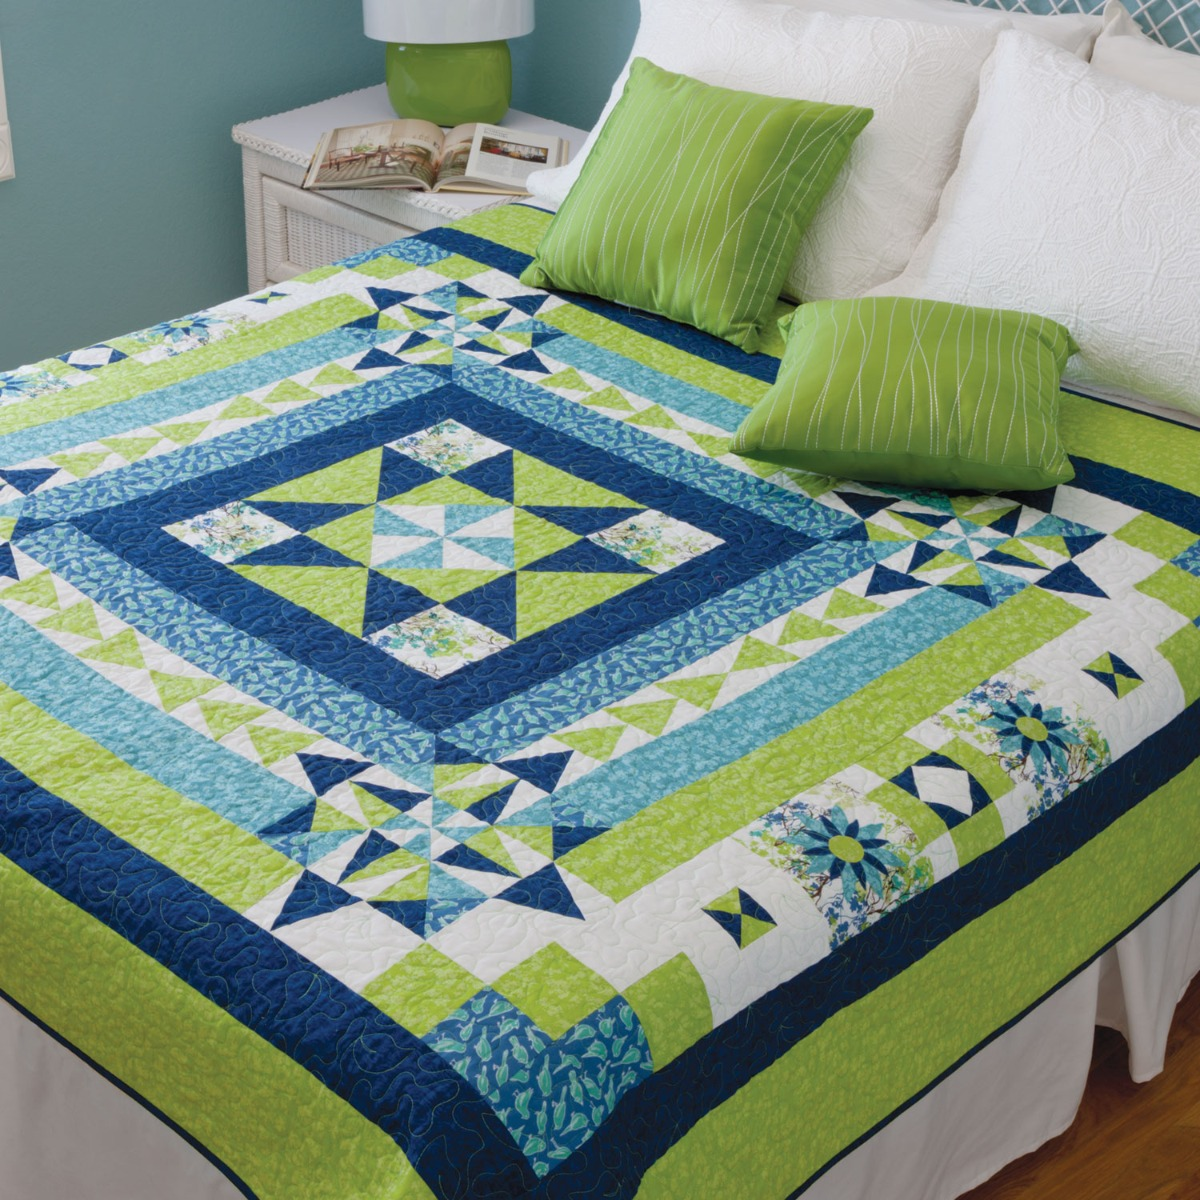 FREE AccuQuilt GO! Boxing the Compass Throw Quilt Pattern